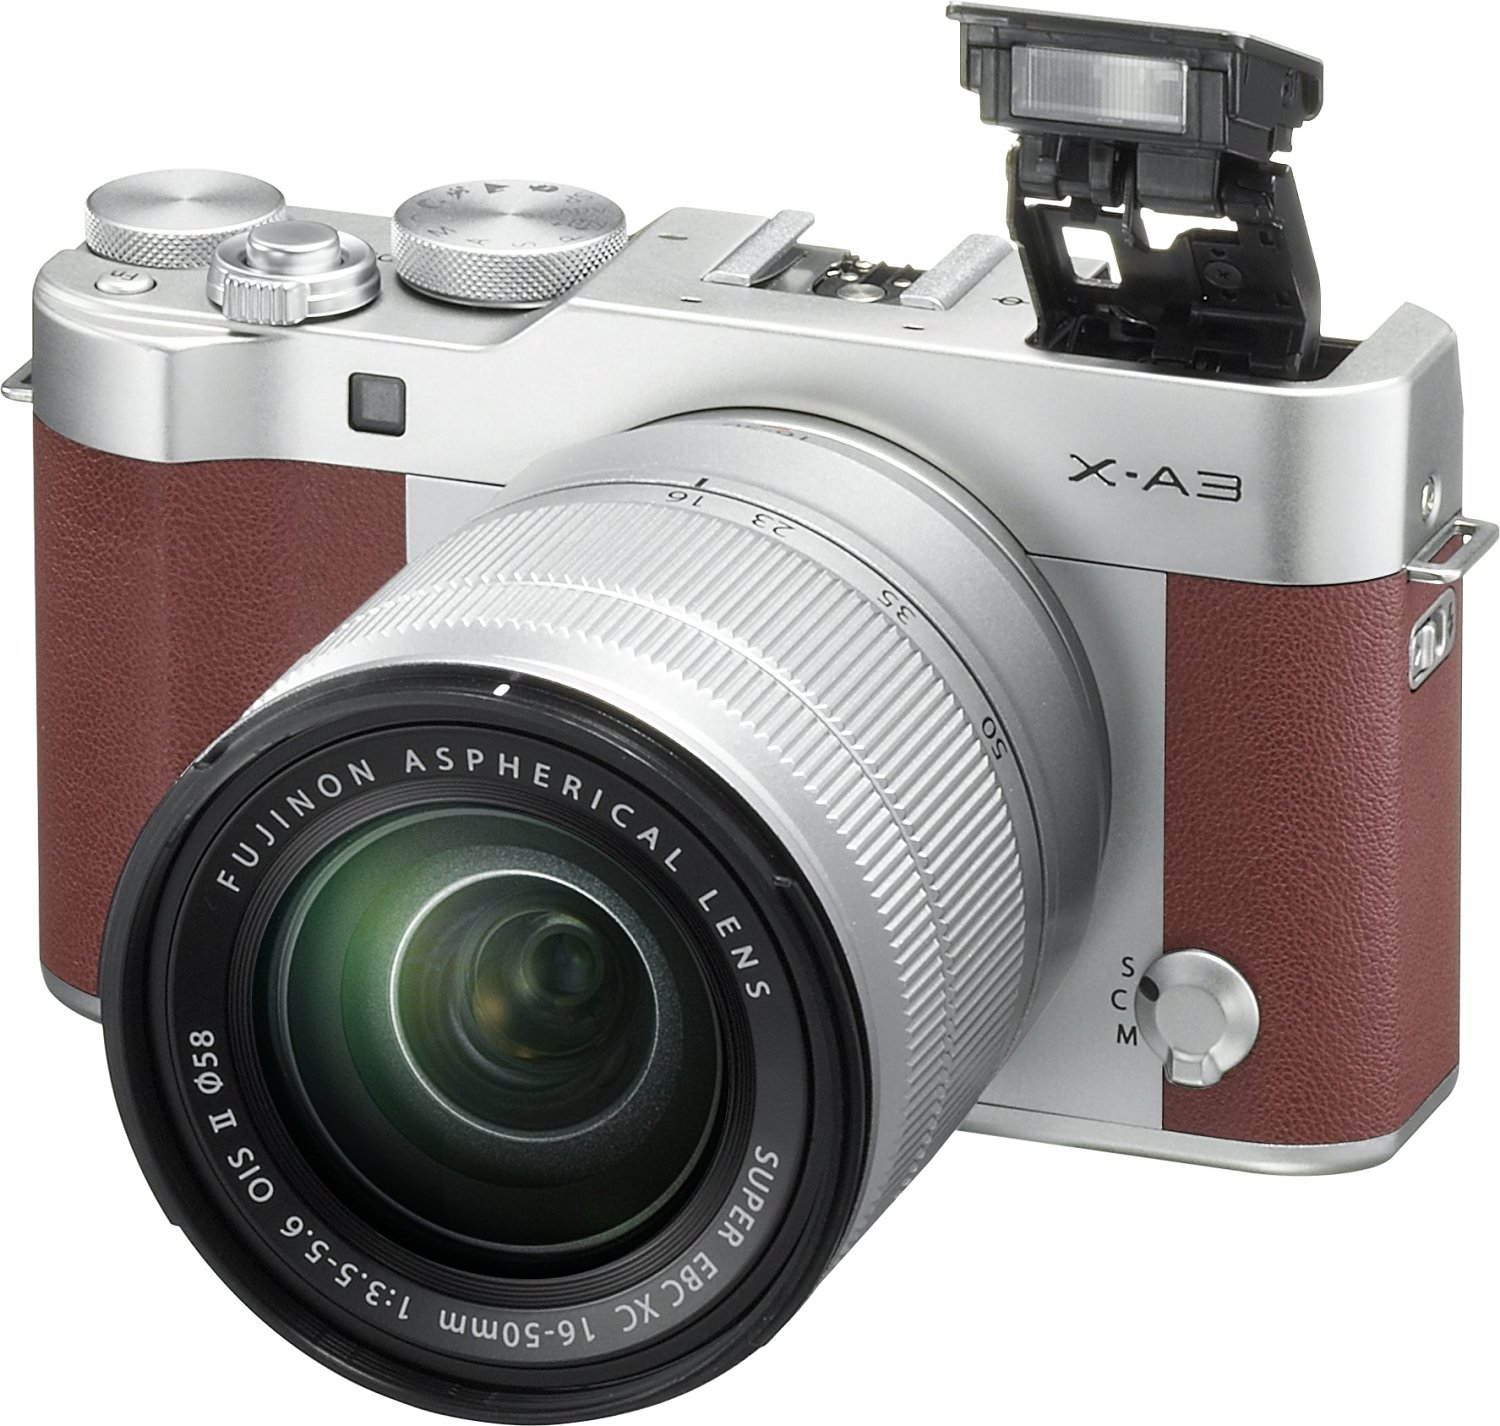 Fujifilm X-A3 with XC 16-50mm lens kit